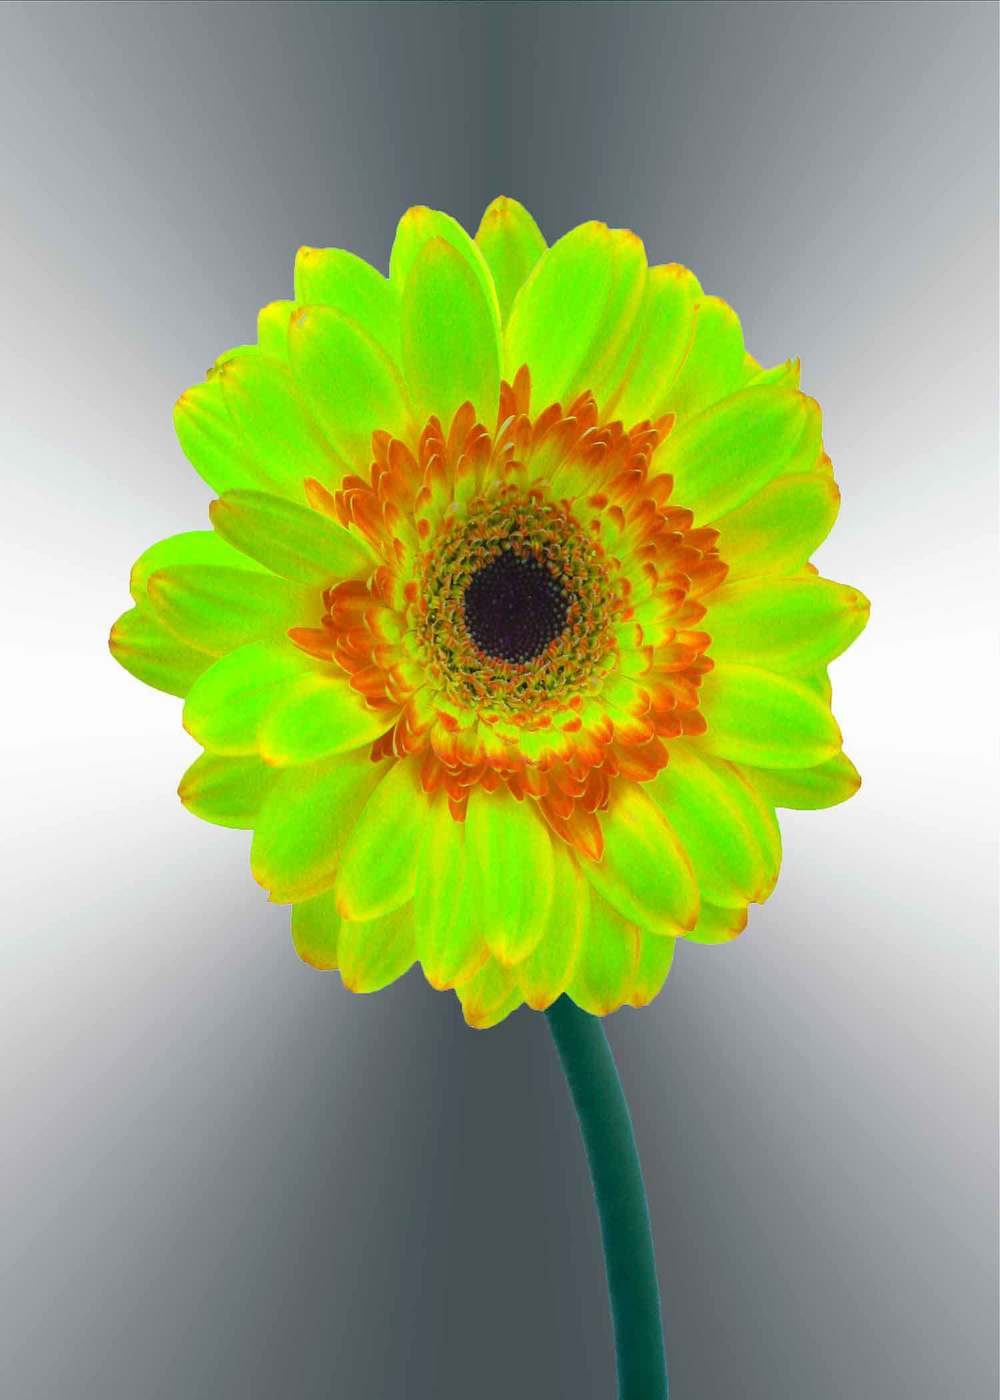 green-gerger-daisy-5x7-(22-of-236)-Edit-2-copy-2.jpg